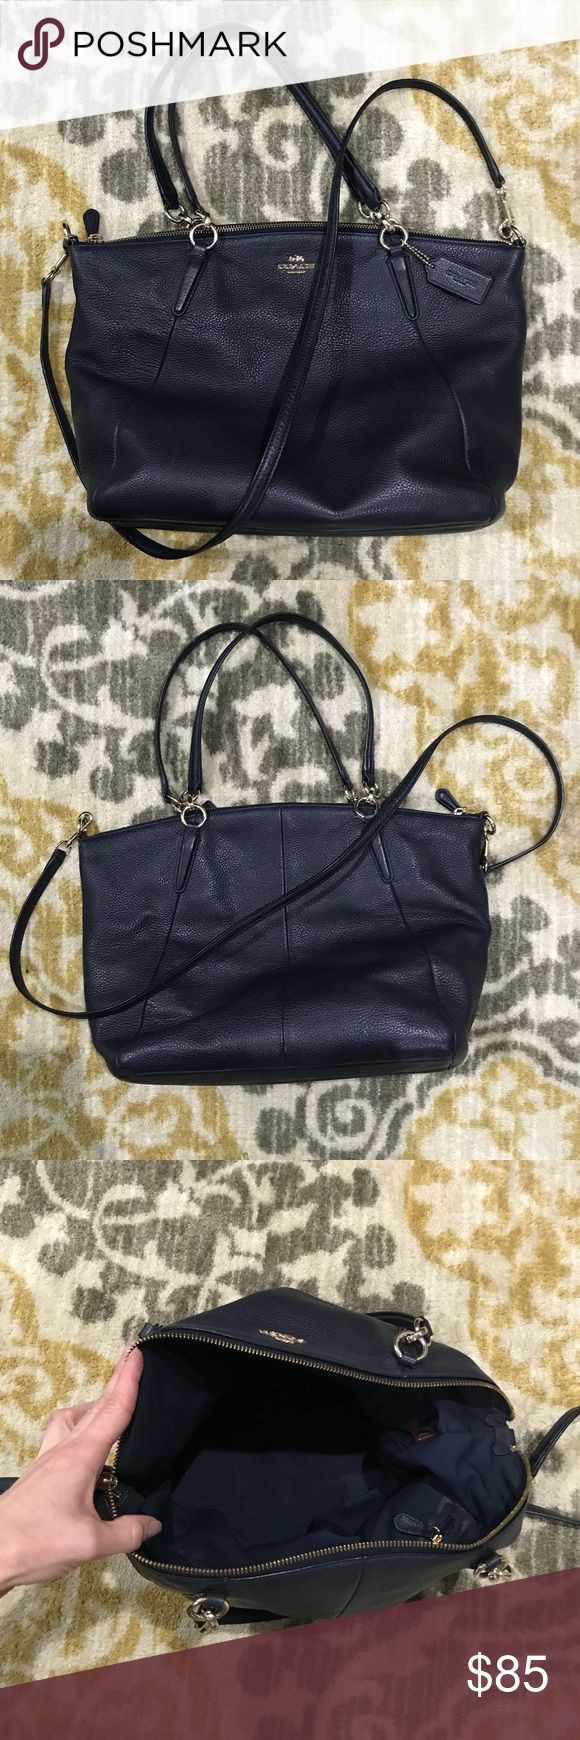 "Gorgeous Navy Leather Coach Satchel Beautiful navy leather Coach satchel! Great color that goes with so much! Versatile too! Can be worn over the shoulder or as a crossbody. Slight wear (see last two pics of bottom and shoulder straps) from being my everyday carry but overall in great condition! Dimensions: App. 16"" wide. 10"" tall. Coach Bags Satchels"